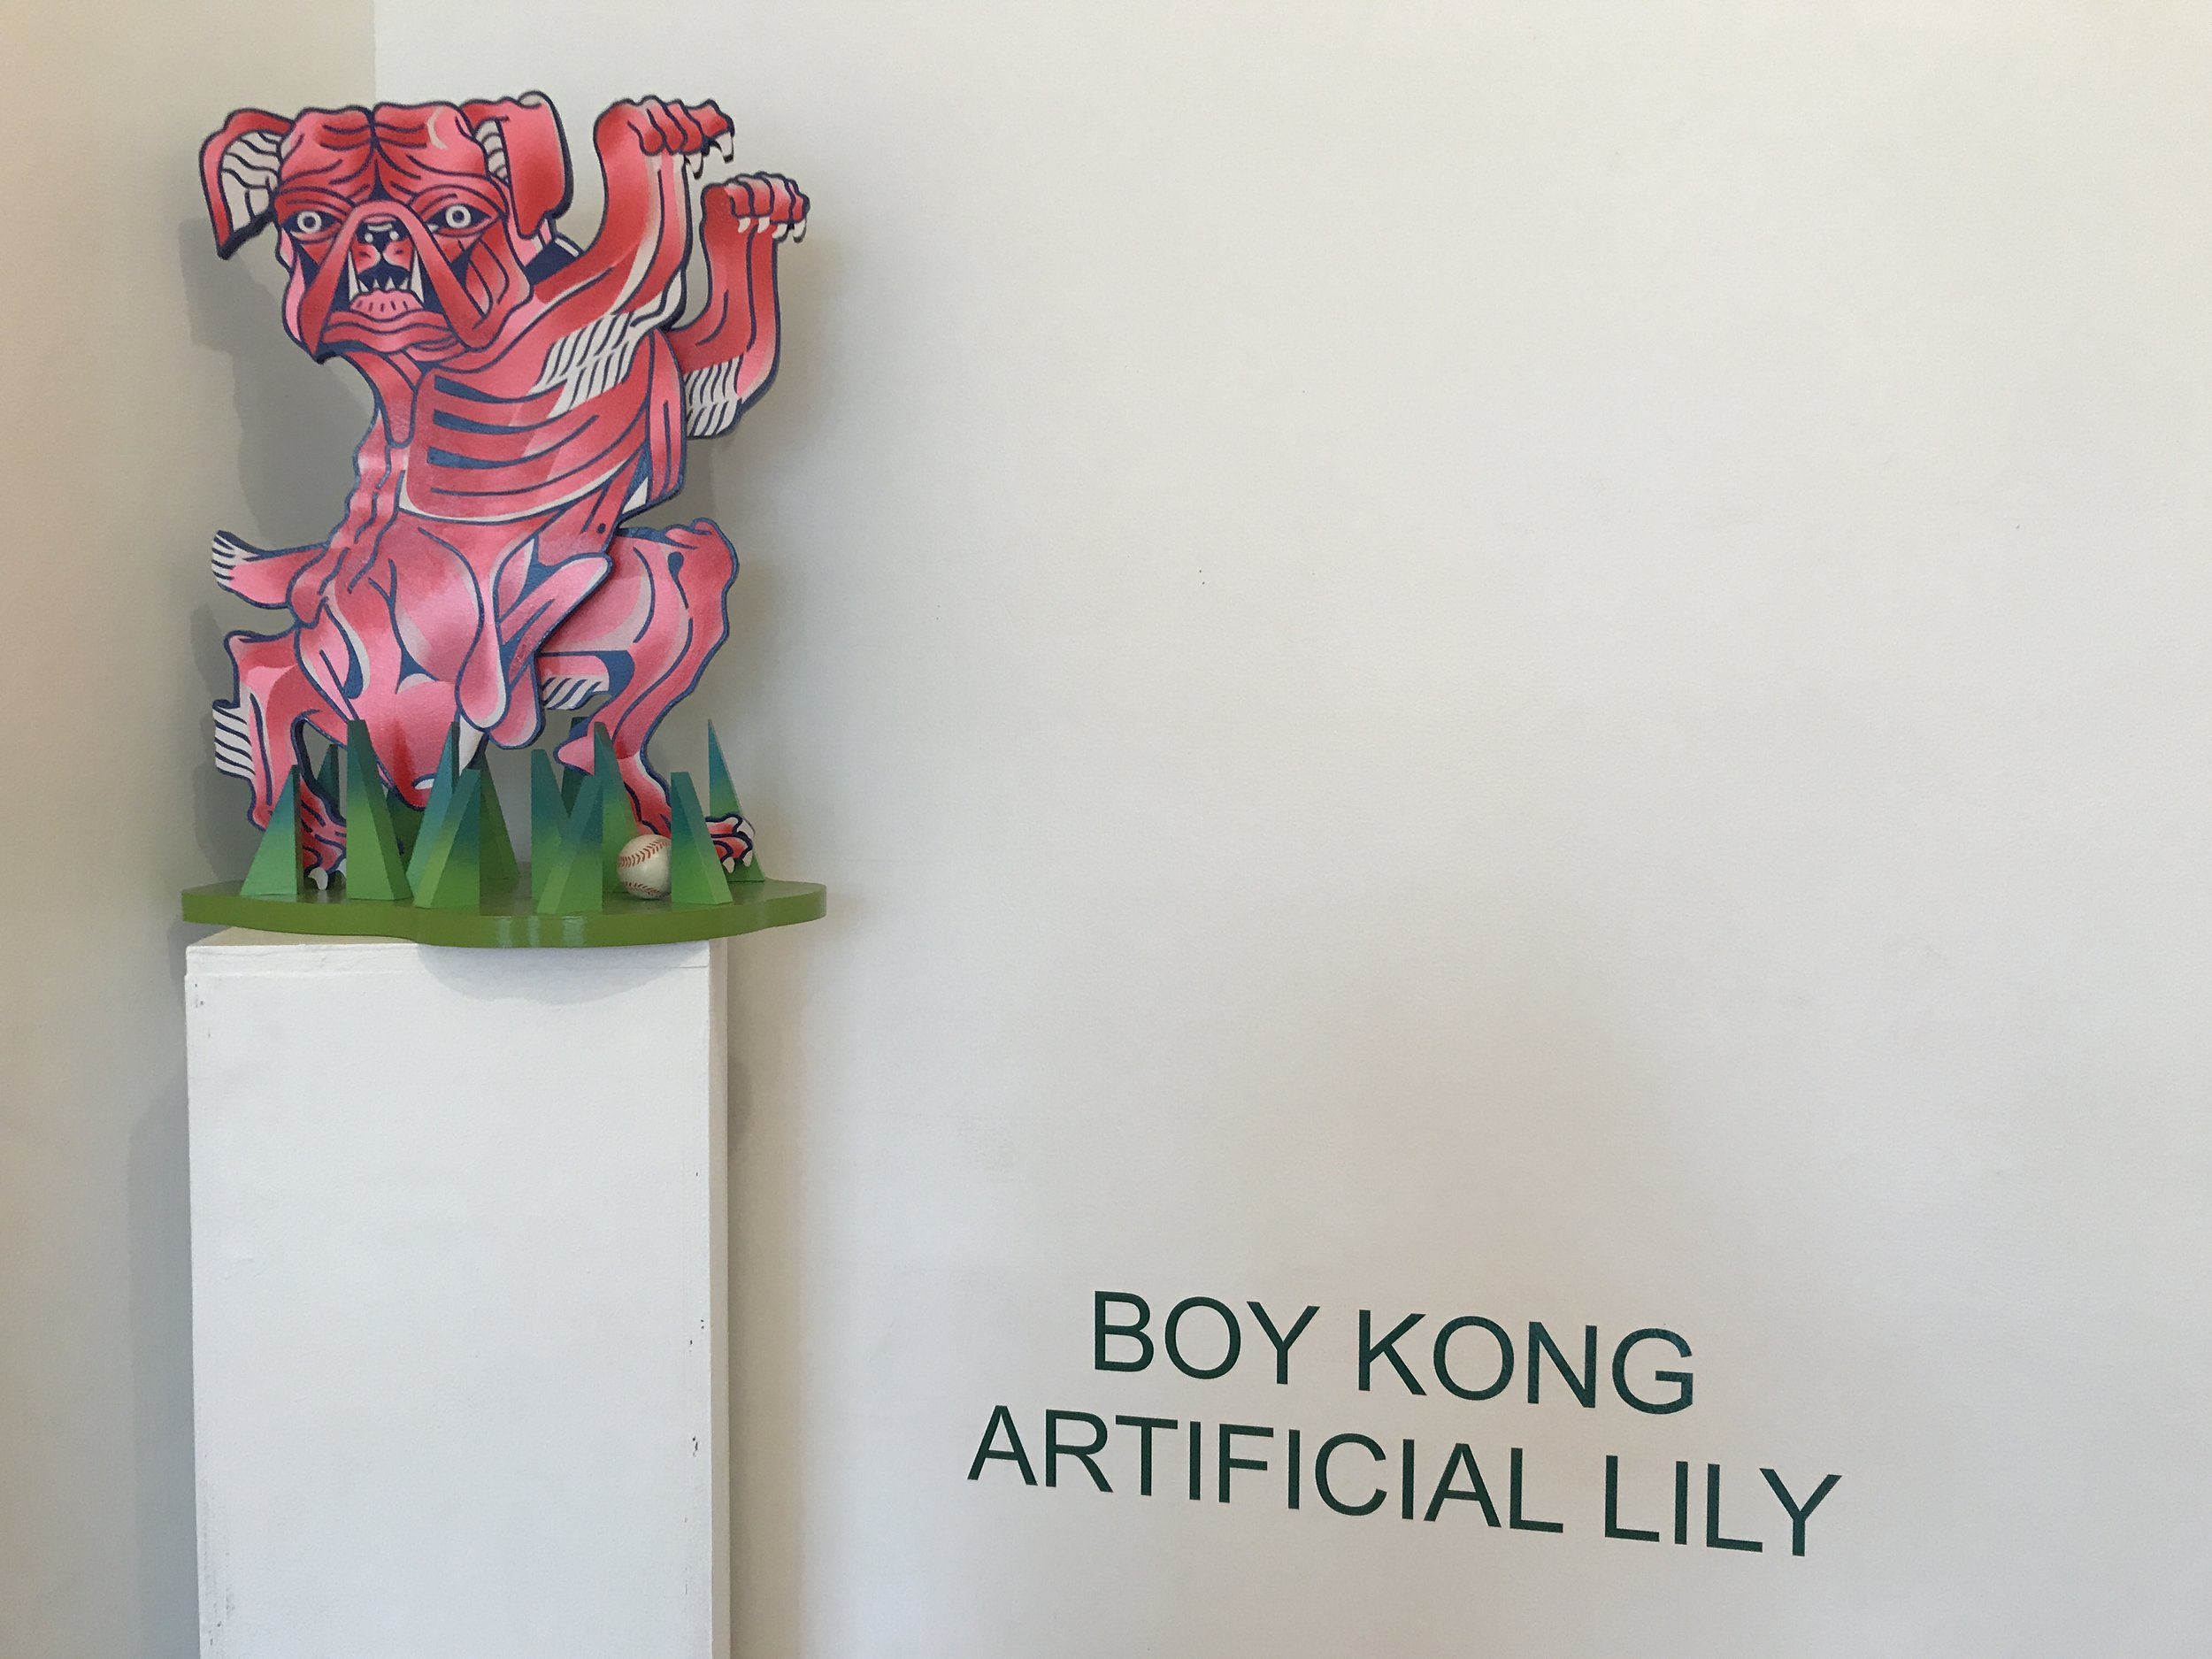 Boy Kong: Artificial Lily